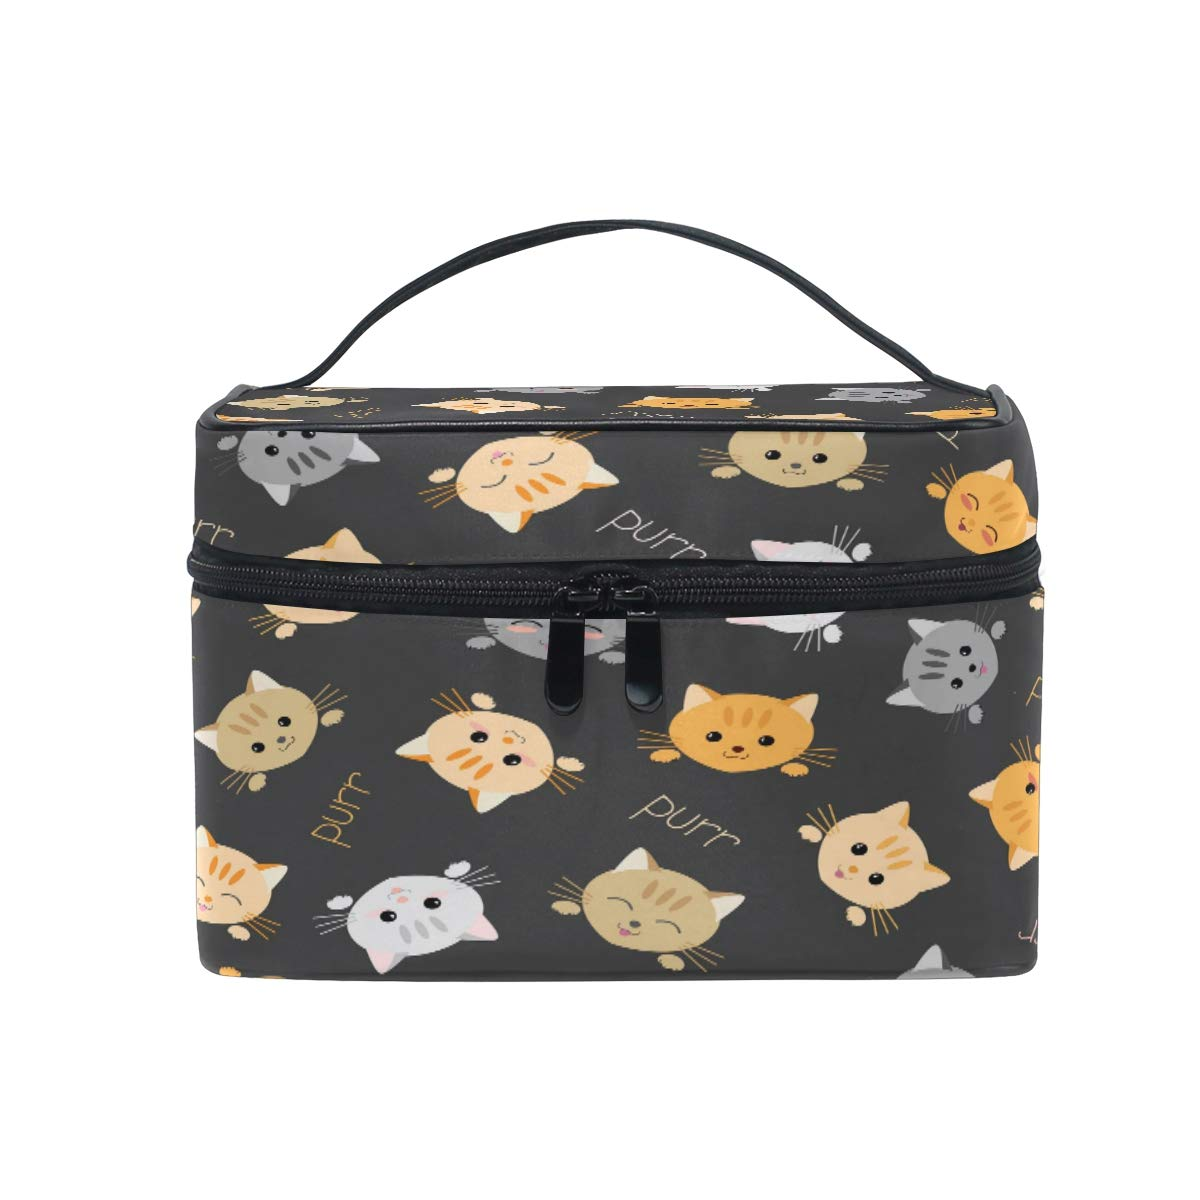 JOKEER Makeup Bag, Cute Animal Cat Portable Travel Case Large Print Cosmetic Bag Organizer Compartments for Girls Women Lady